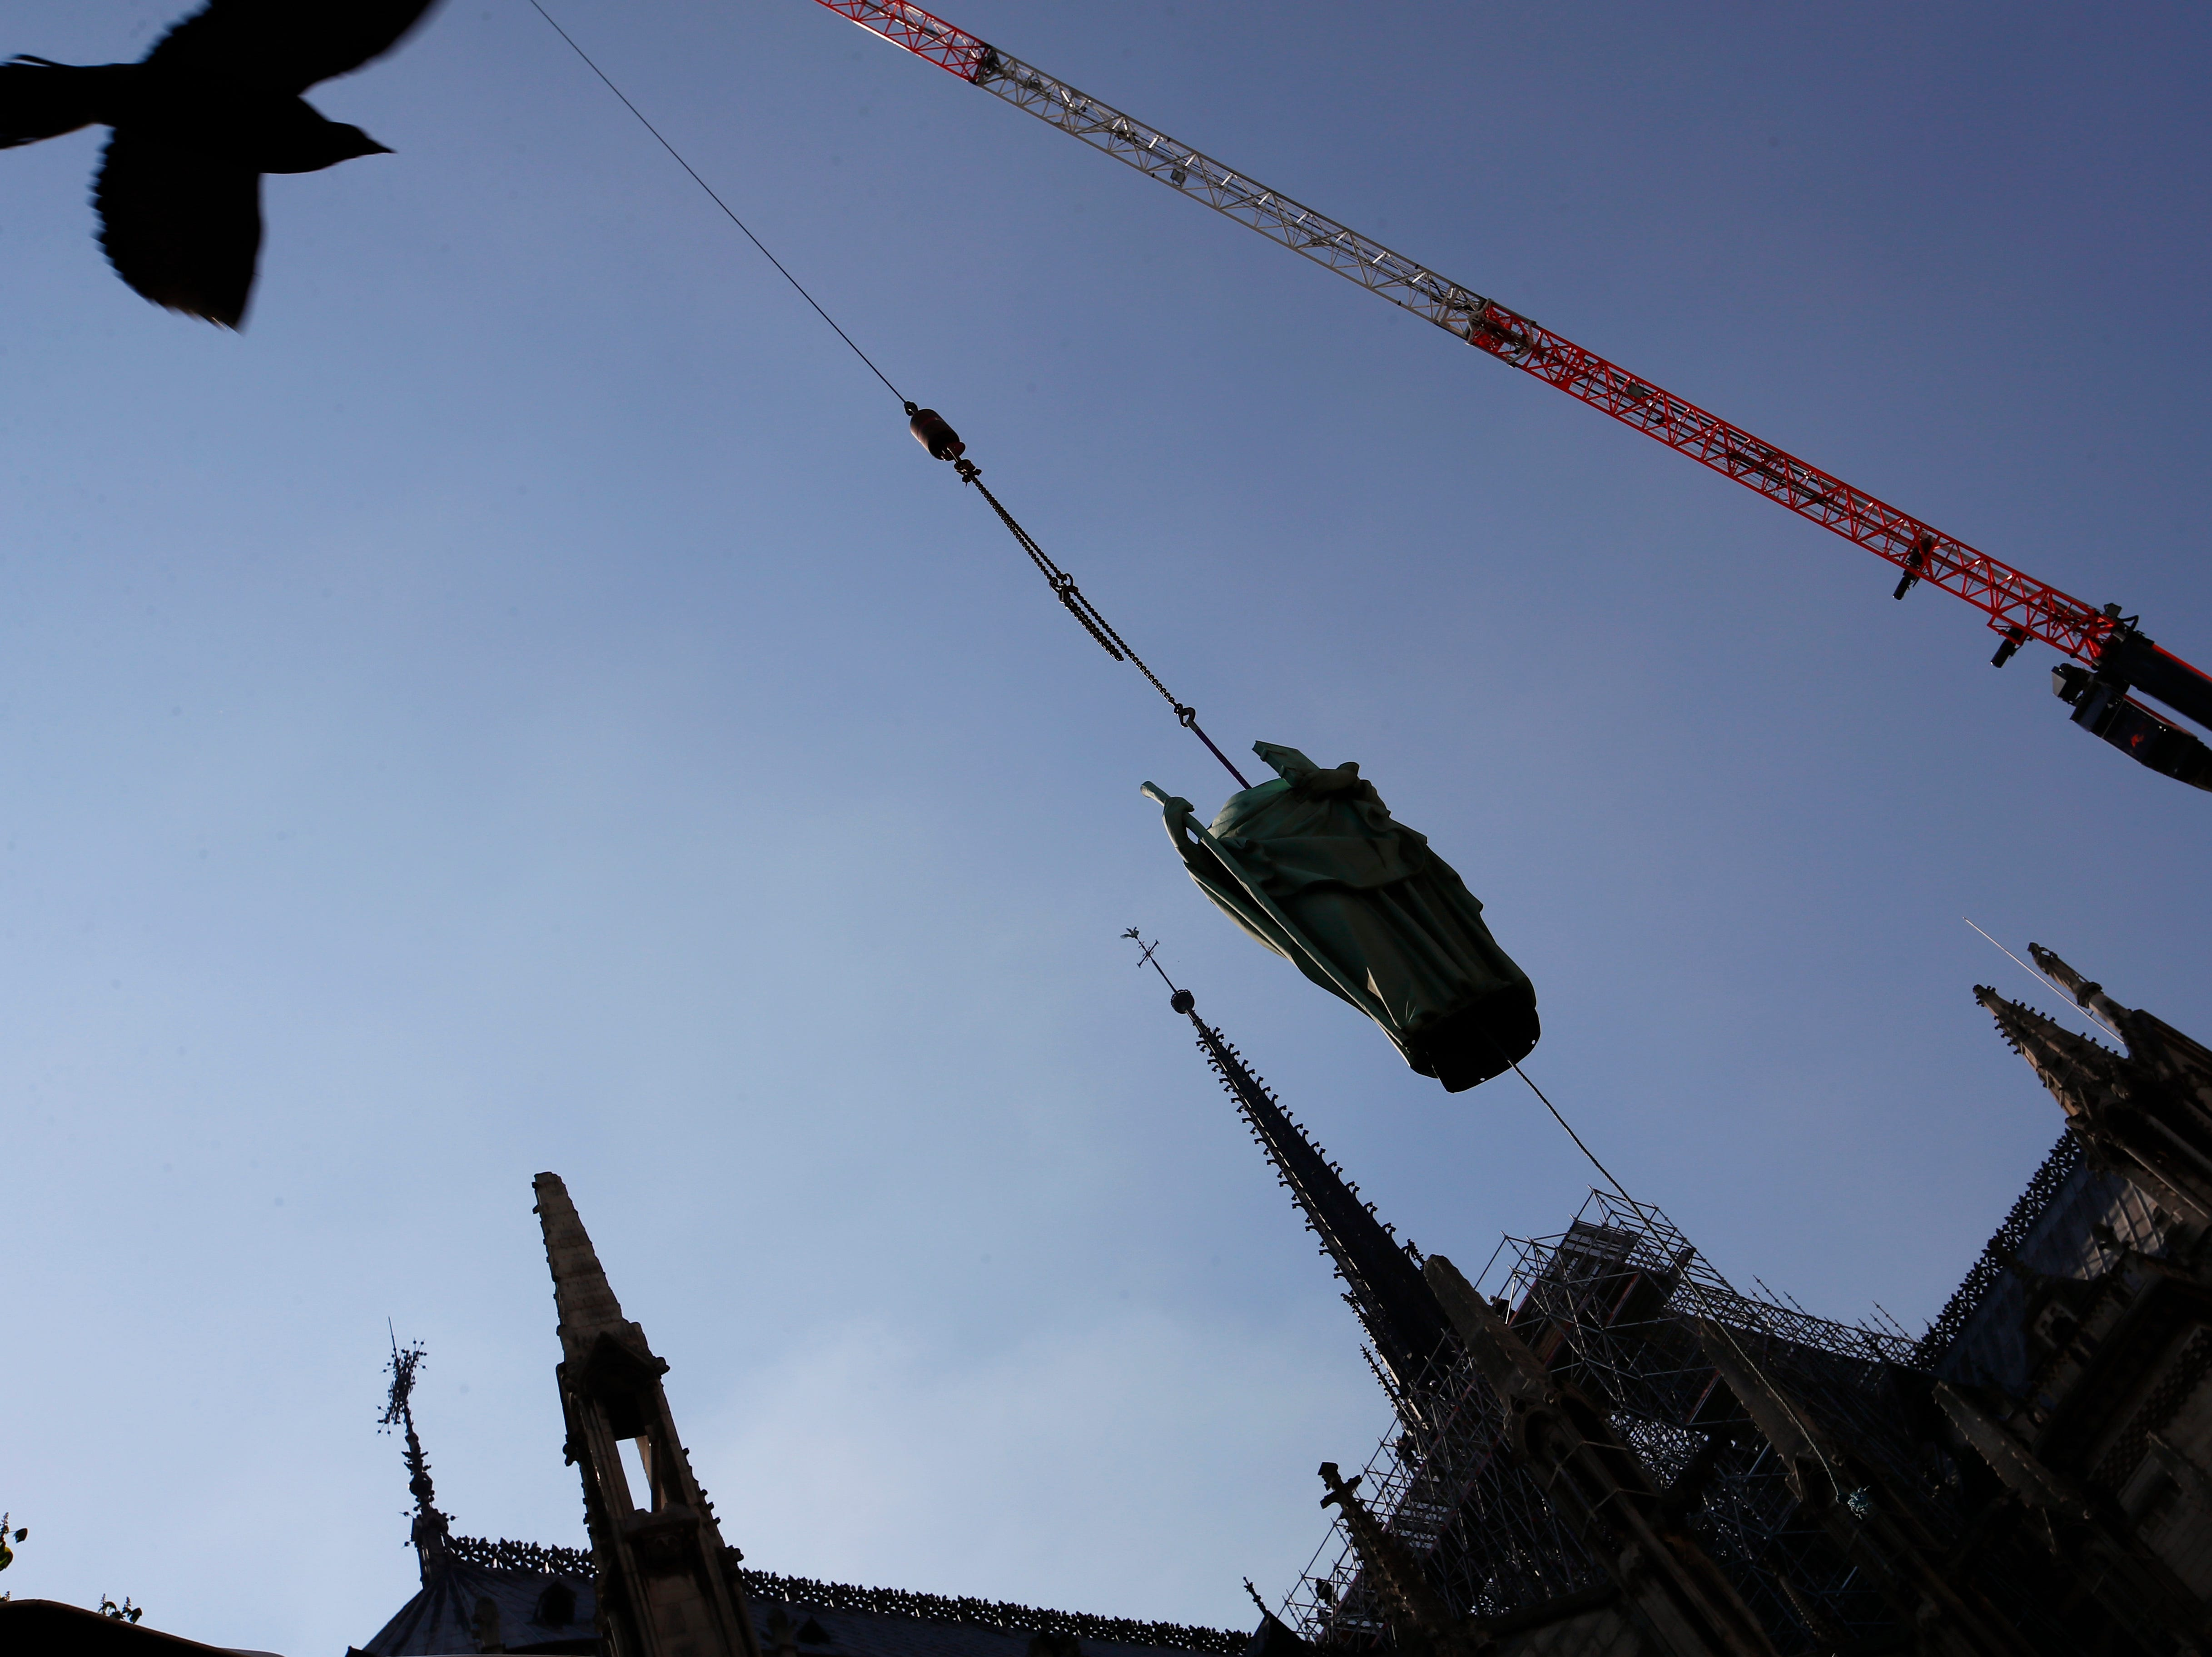 A pigeon flies over as the religious statue perched atop Paris' Notre Dame Cathedral descends to earth for the first time in over a century as part of a restoration, in Paris Thursday, April 11, 2019. The 16 greenish-gray copper statues, which represent the twelve apostles and four evangelists, are lowered by a 100 meter (105 yard) crane onto a truck to be taken for restoration in southwestern France.